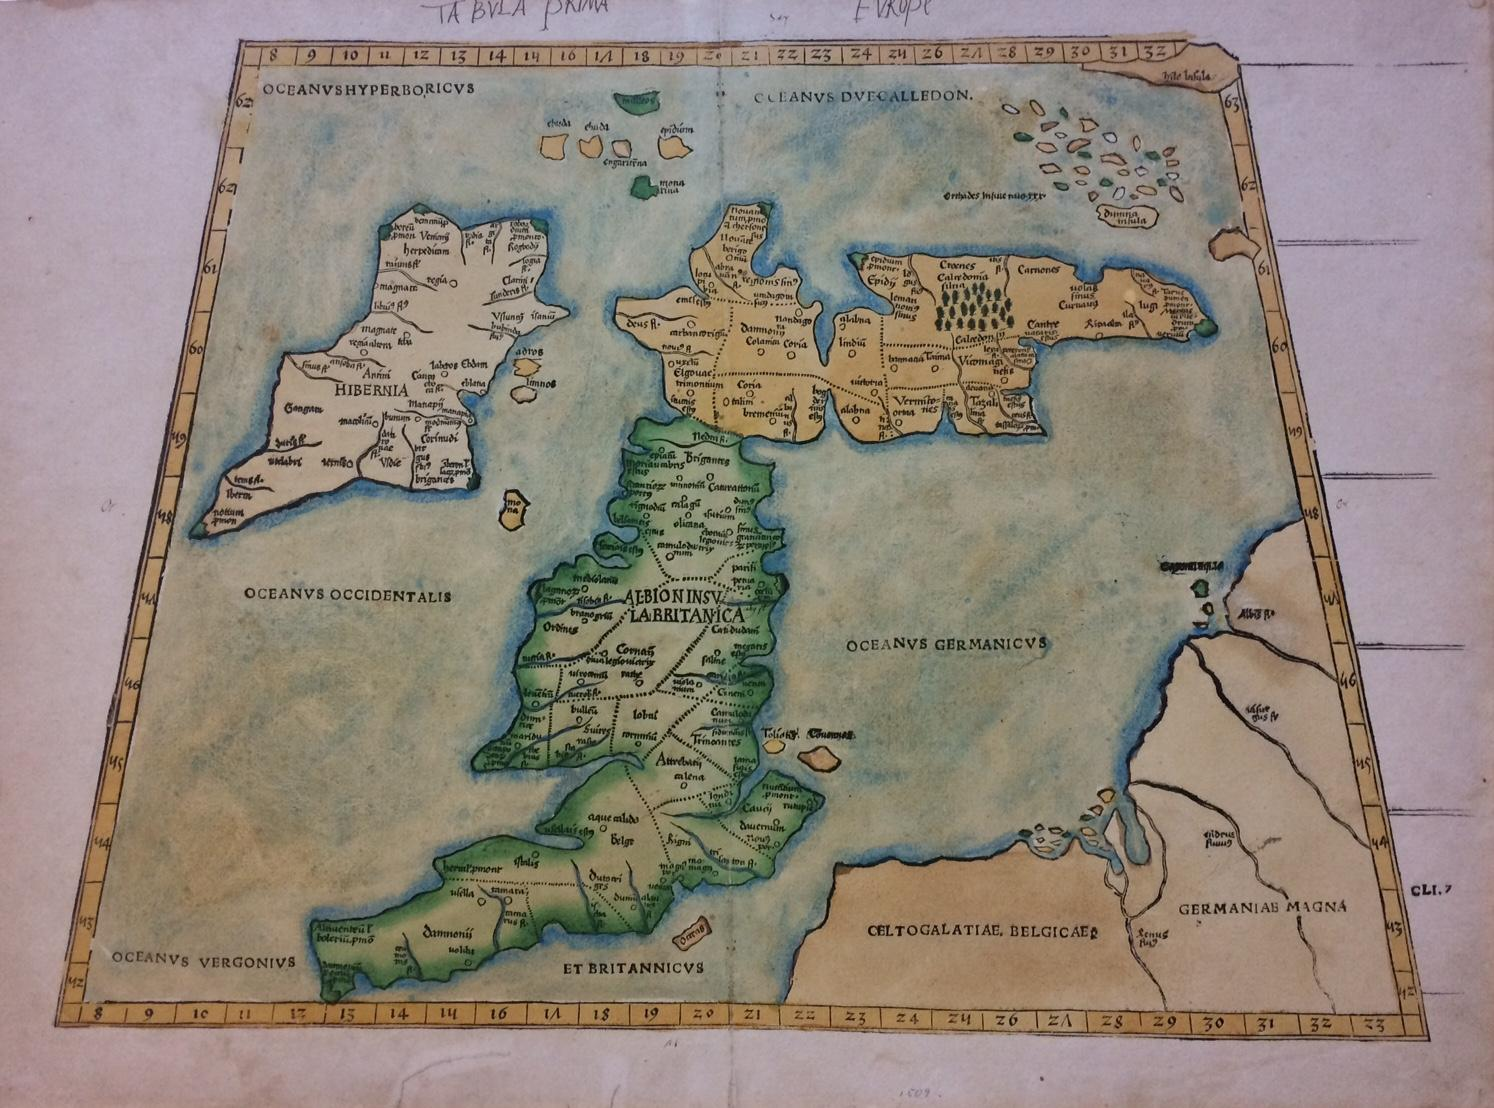 Tabula prima europe iconic waldseemuller map with scotland on an tabula prima europe iconic waldseemuller map with scotland on an east west orientation gumiabroncs Image collections